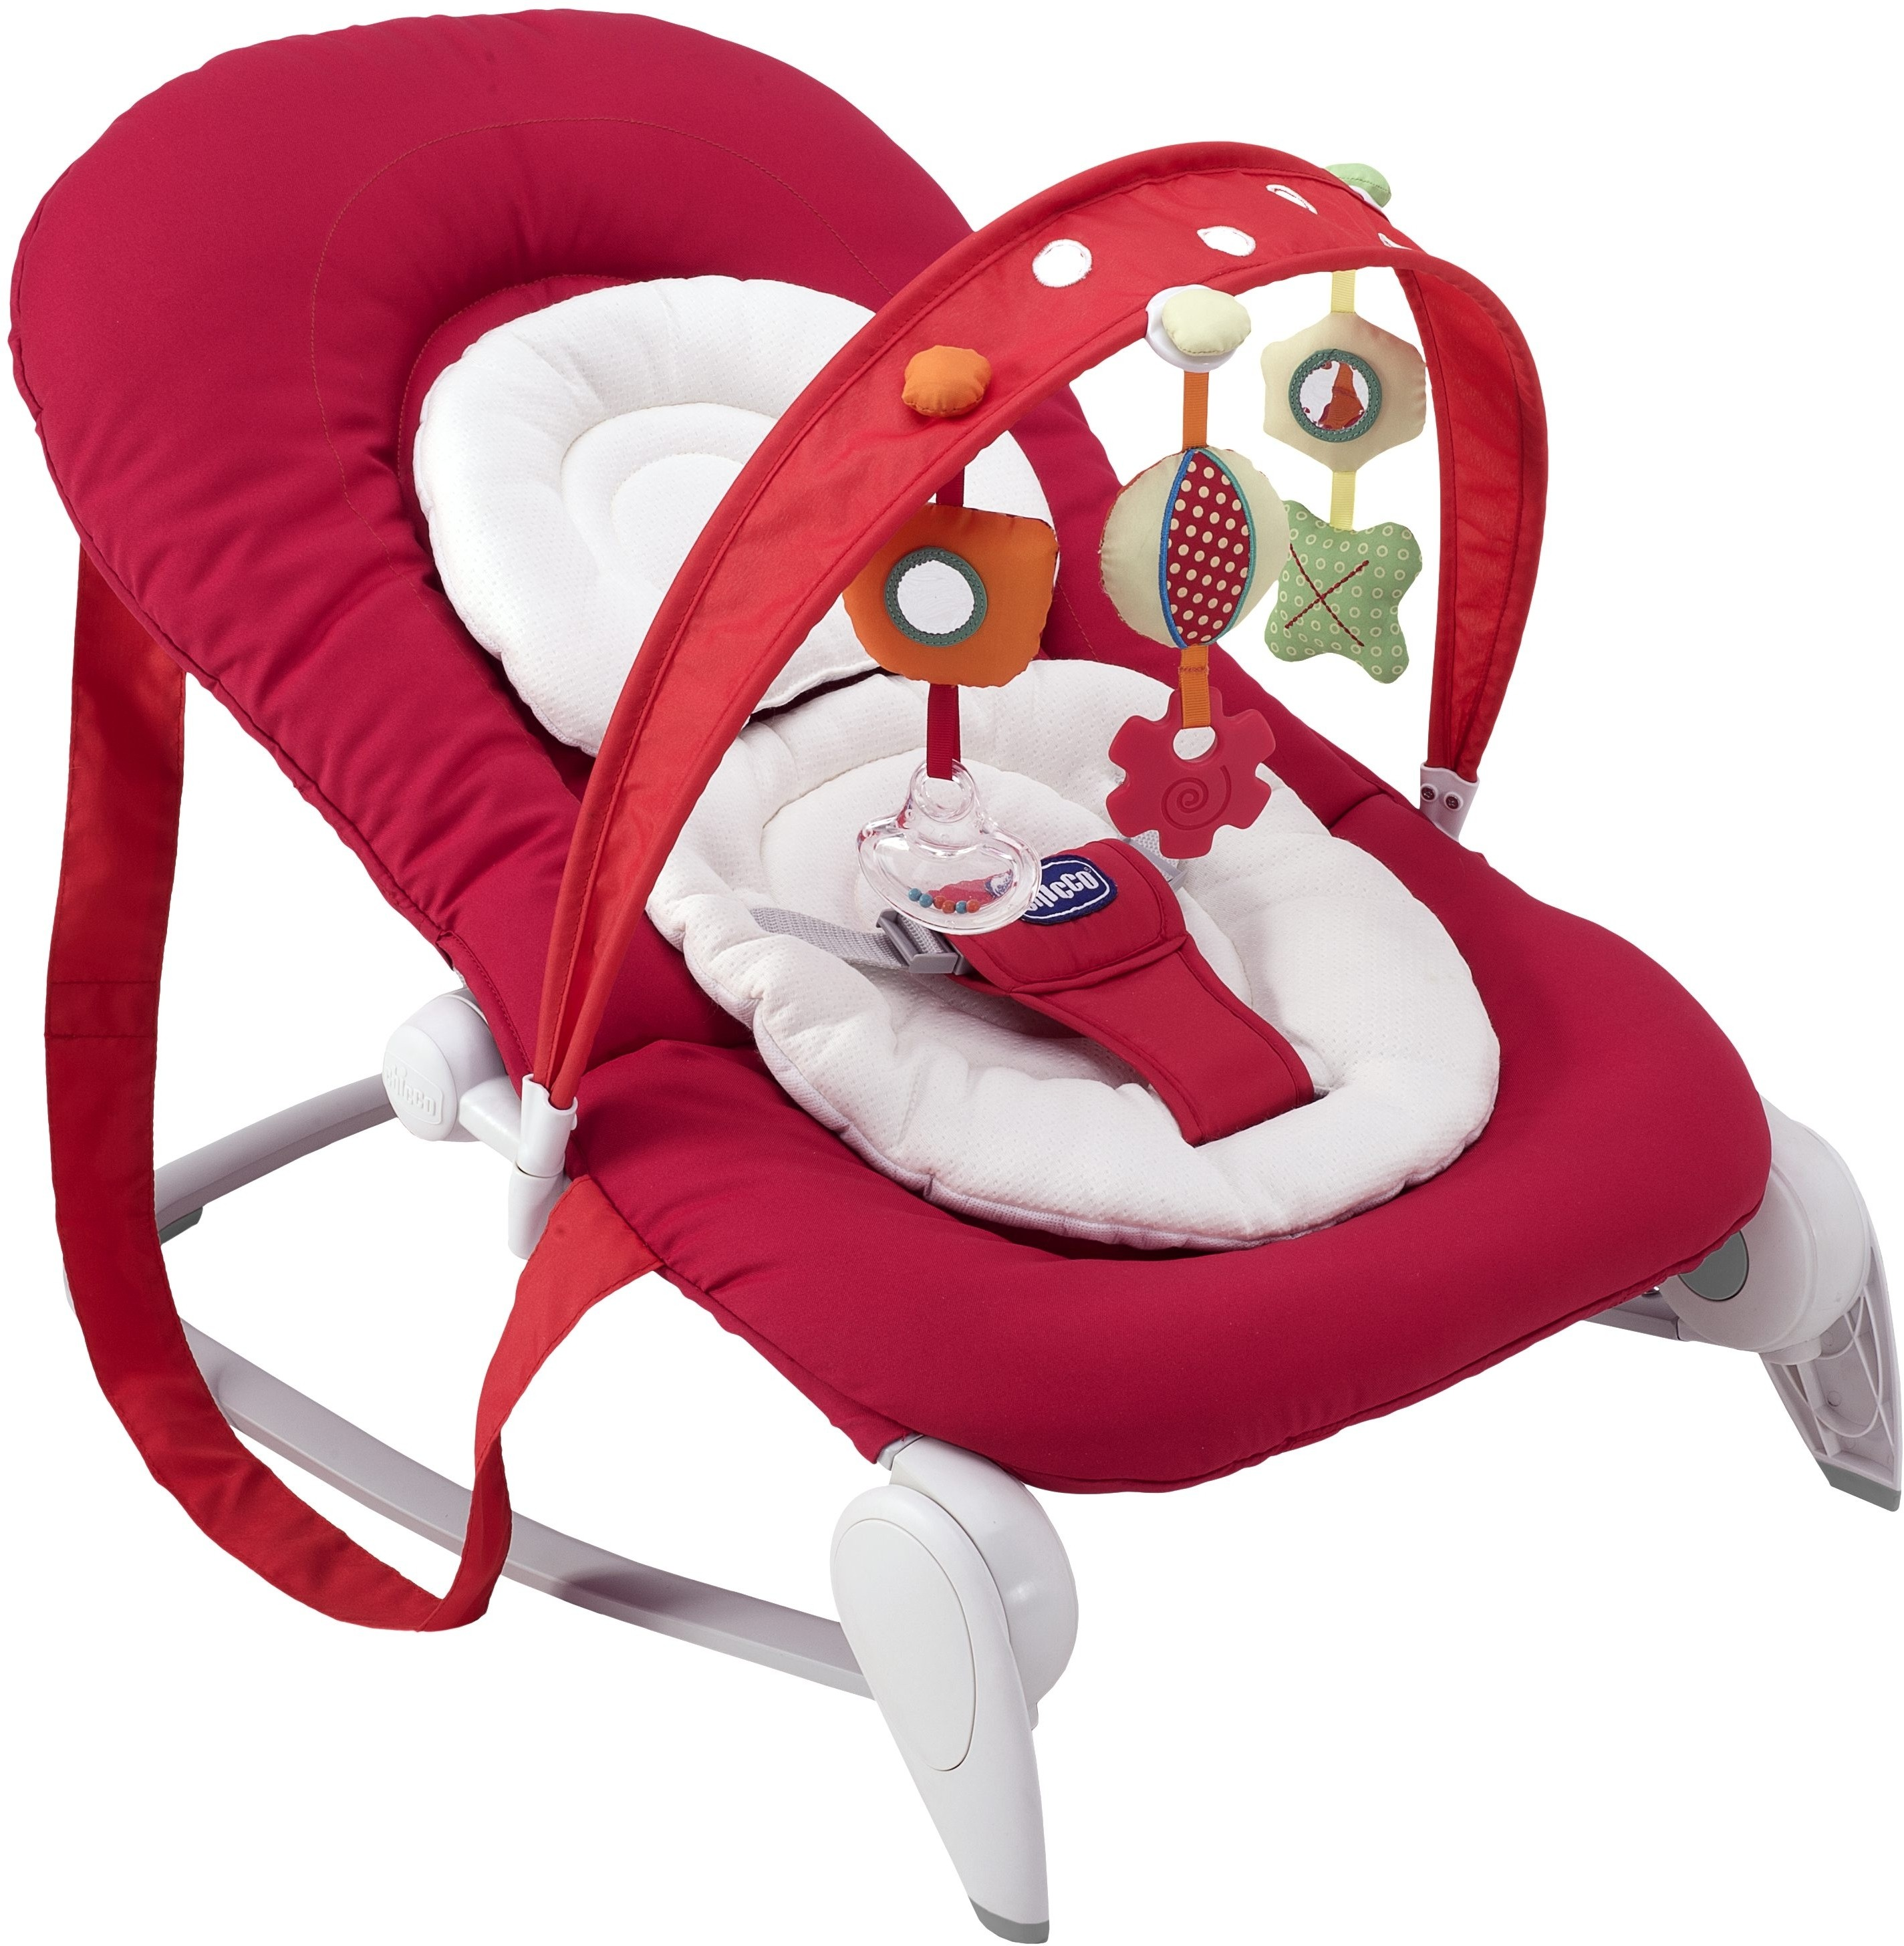 Rockers Swings Price In India Buy Online At Best Bright Starts Comfort Ampamp Harmony Portable Swing Blossomy Blooms Chicco Hoopla Baby Bouncer Red Wave